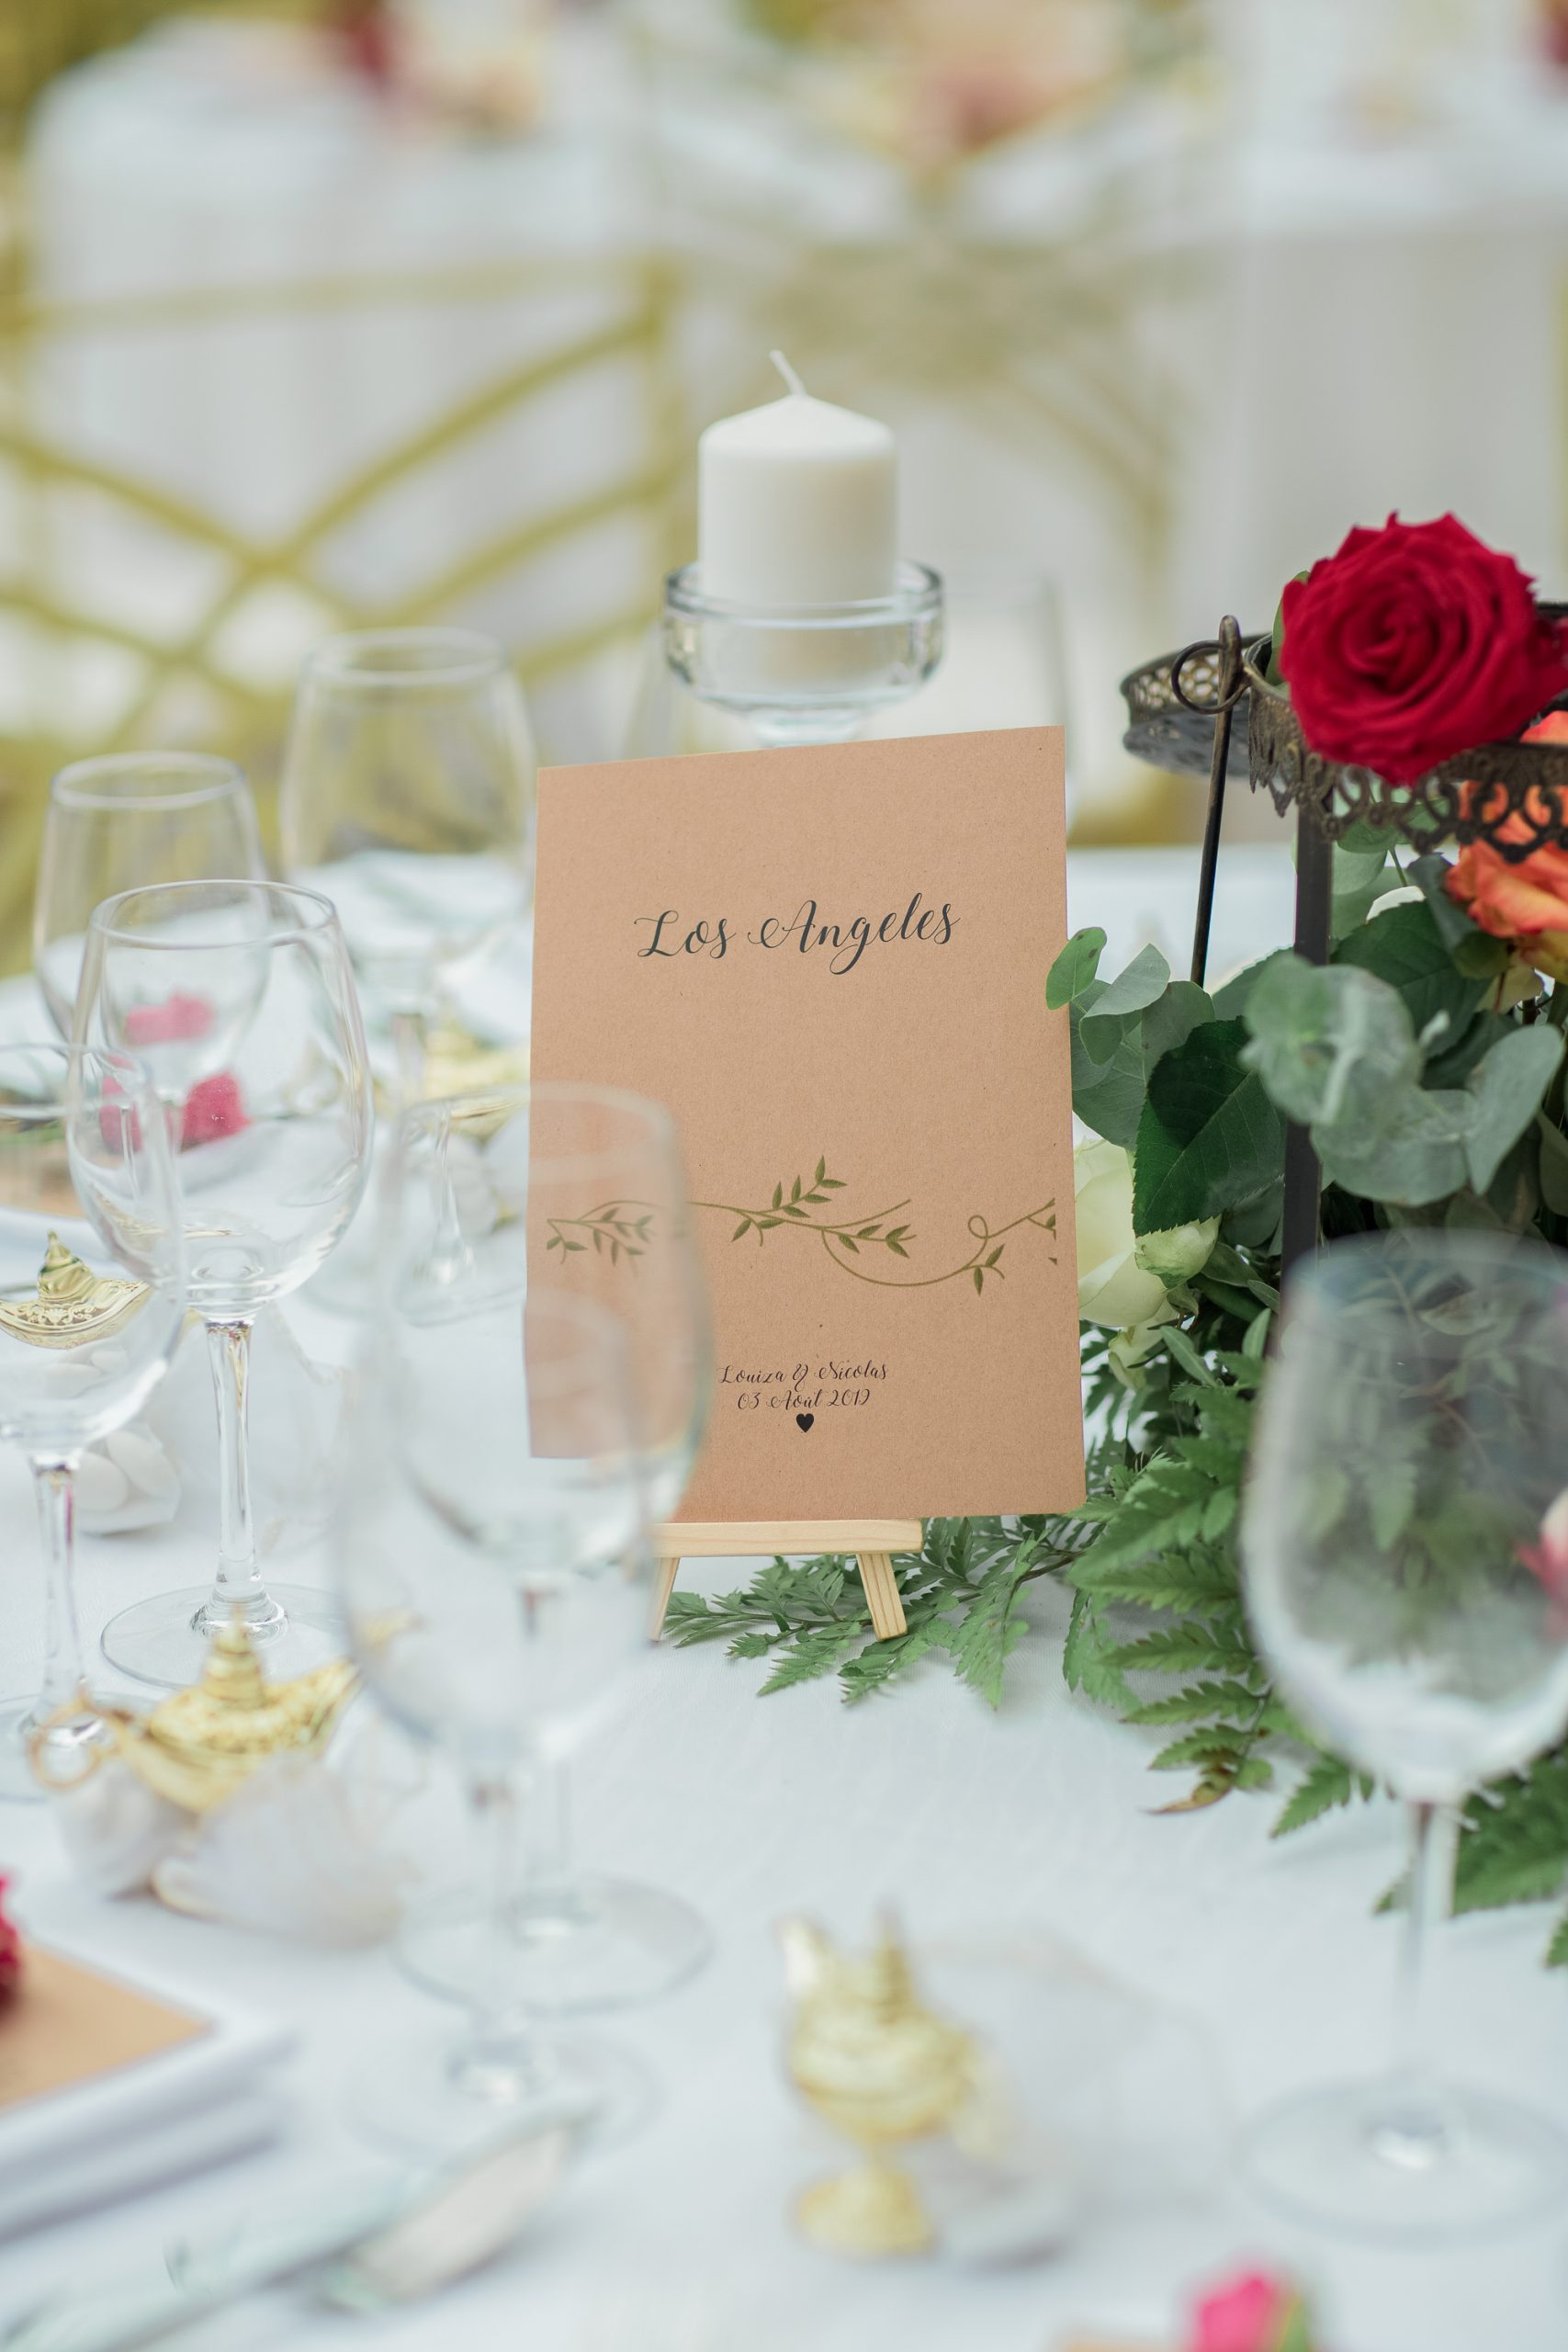 photographie-mariage-decoration-table-chateau-nandy